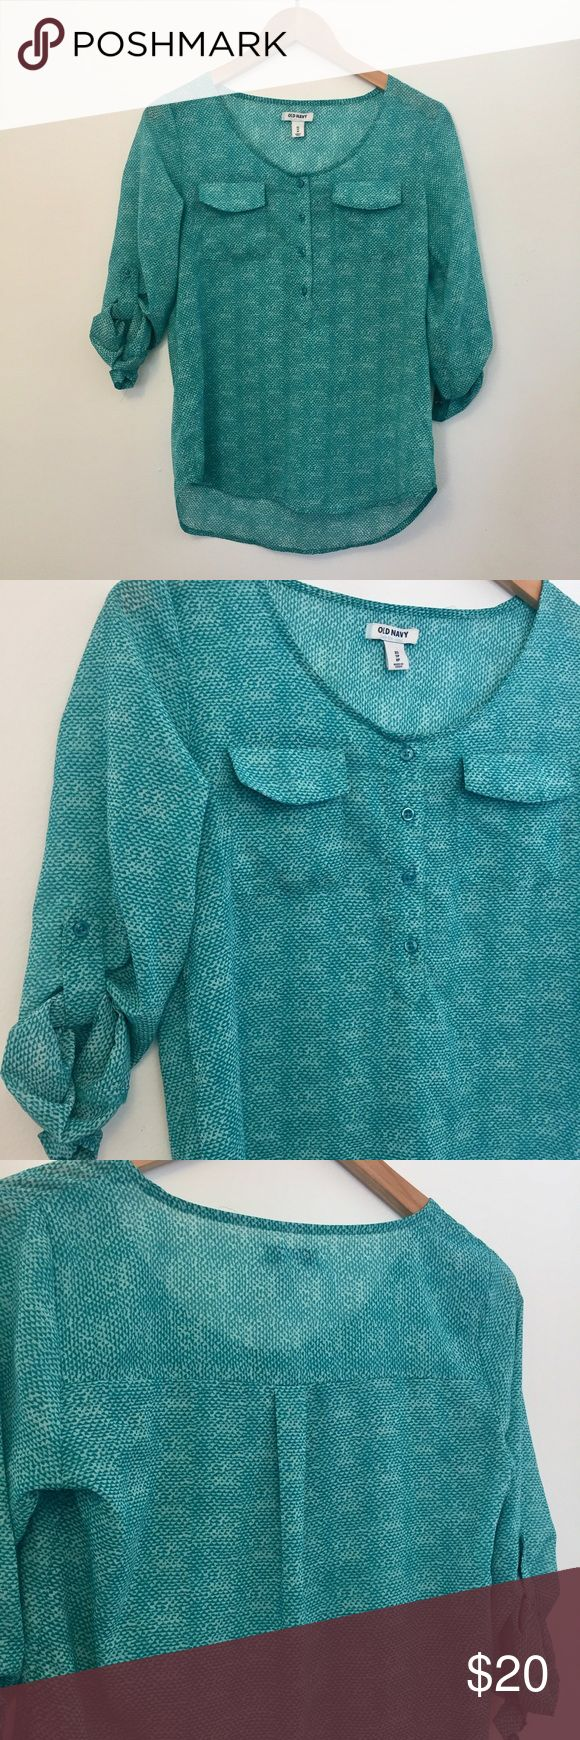 Old Navy • Button Blouse The perfect blouse for work or a casual day. 3/4 button down with rolled up sleeves that button, two pockets at the bustline. Pleating in the back for added interest. Loose flowy feel throughout. Is see through slightly so you will need a nude cami. Greenish blue color. Polyester. No flaws Old Navy Tops Blouses